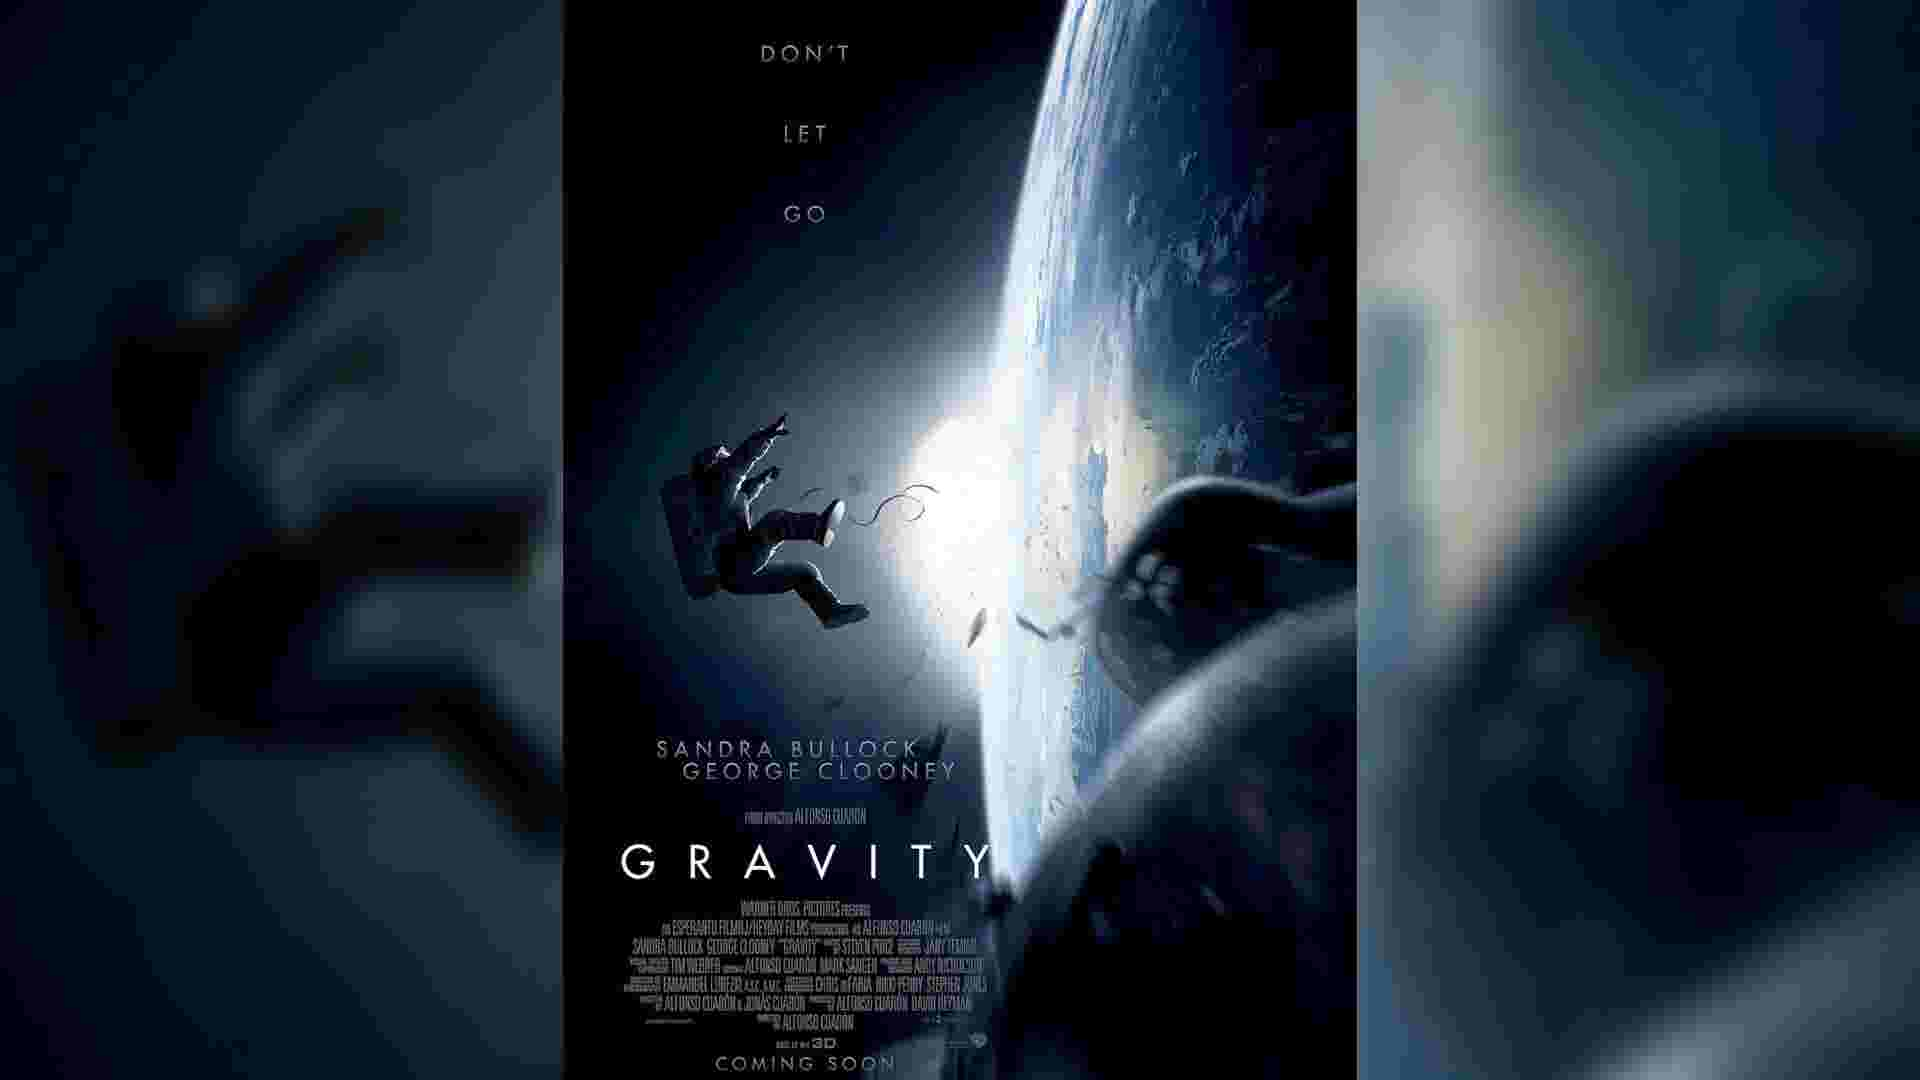 Sandra Bullock brings 'Gravity' to new 3D film | USA Entertainment Now